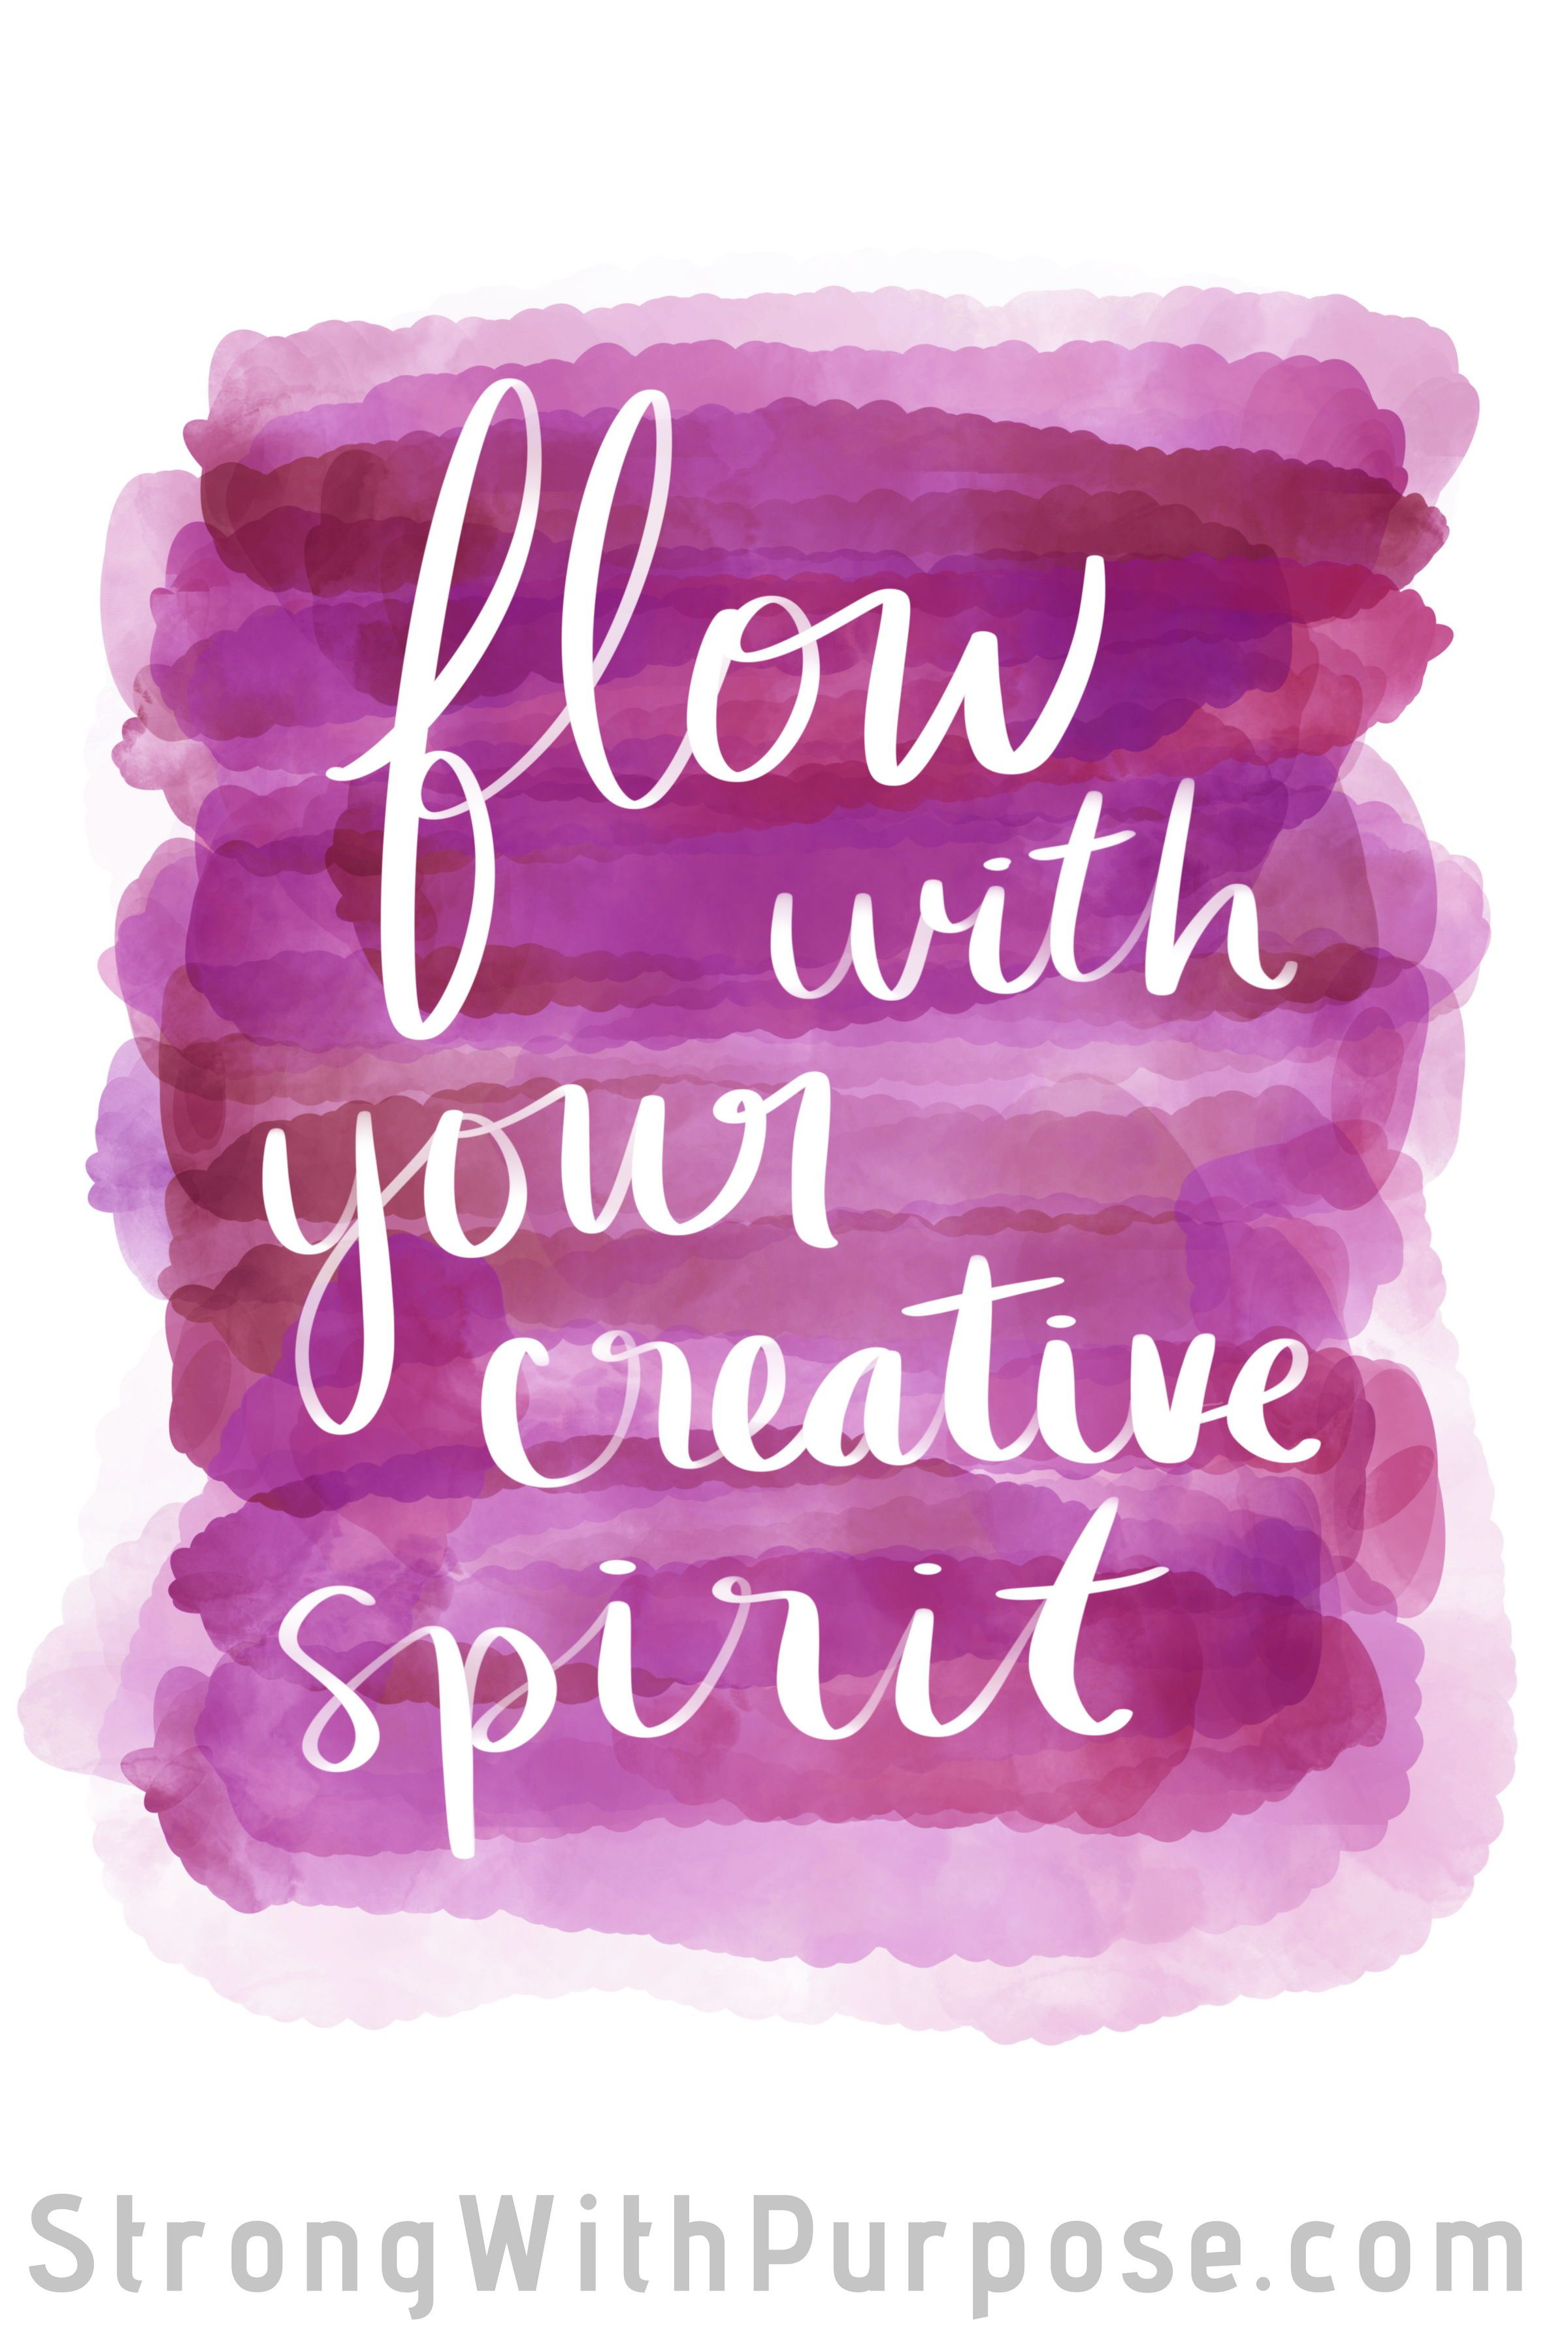 Flow with Your Creative Spirit  Strong with Purpose  Healing